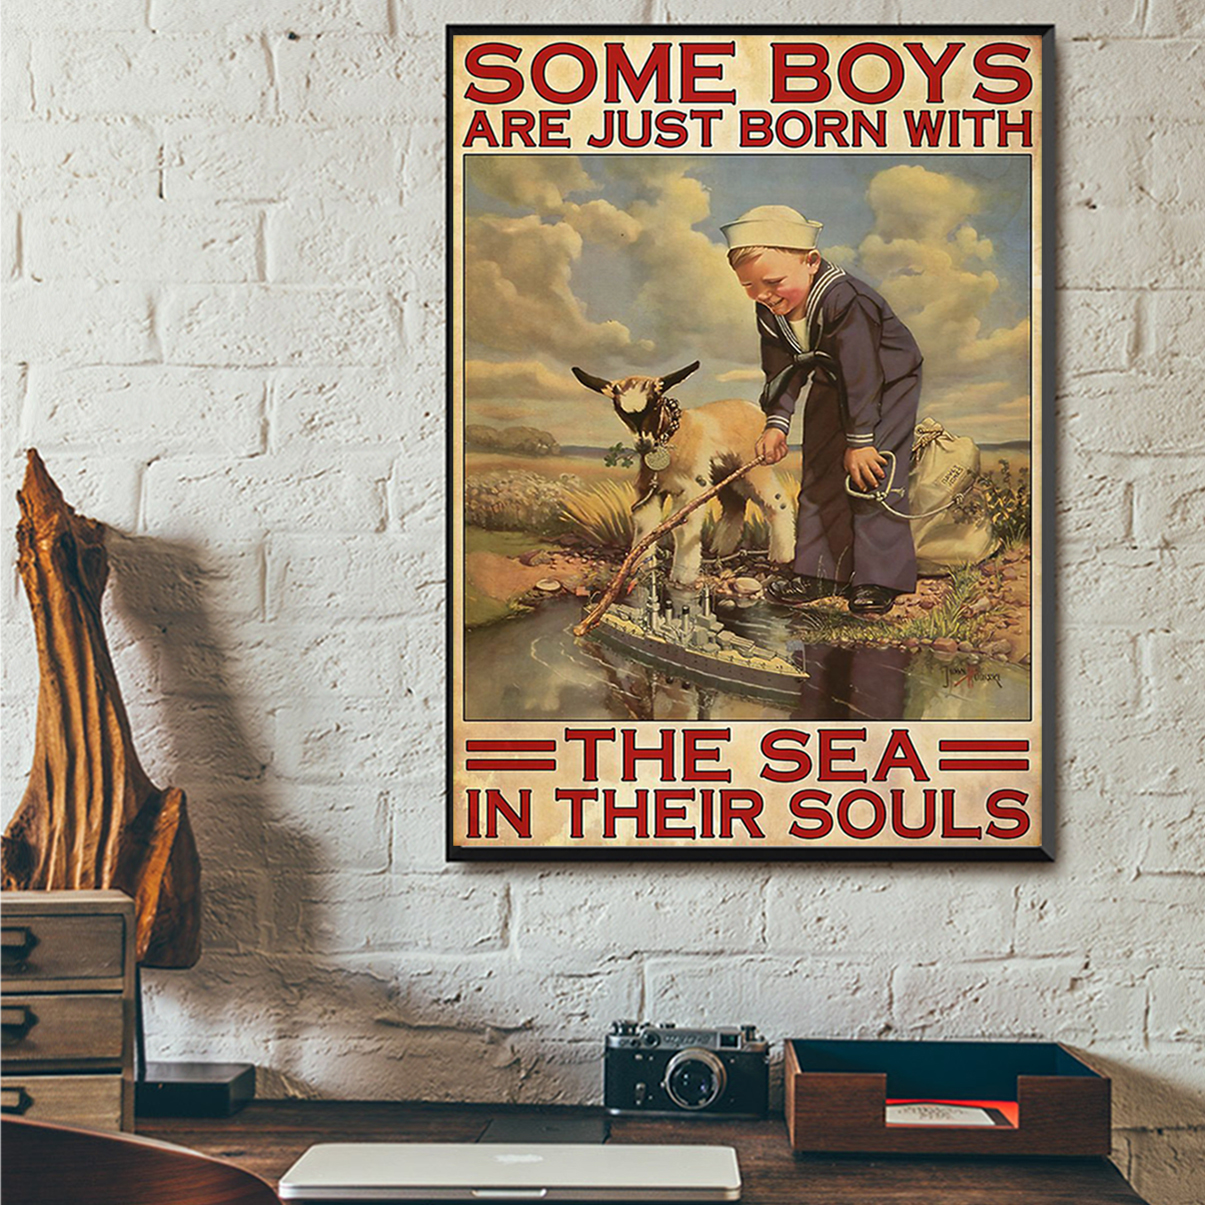 Some boys are just born with the sea in their souls poster A1